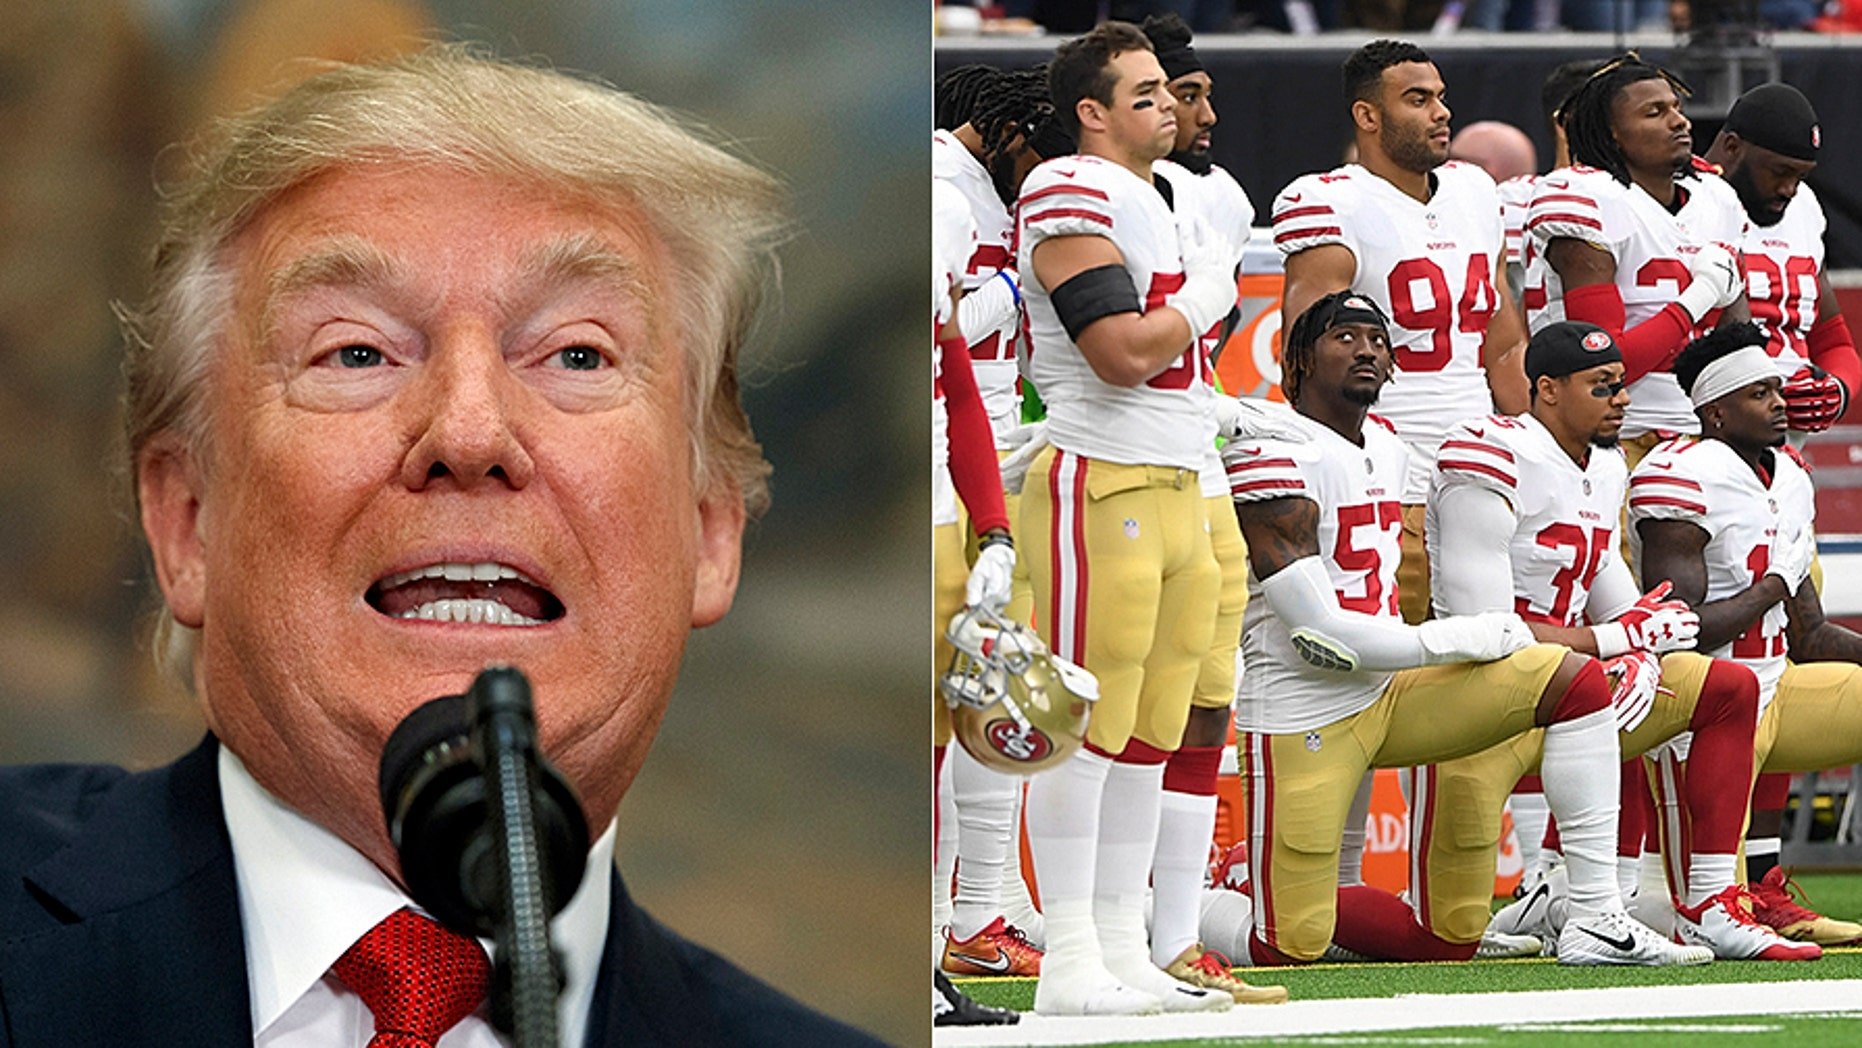 President Trump blasted NFL players, like the San Francisco 49ers, seen at right, for kneeling during the National Anthem. (AP/Reuters)